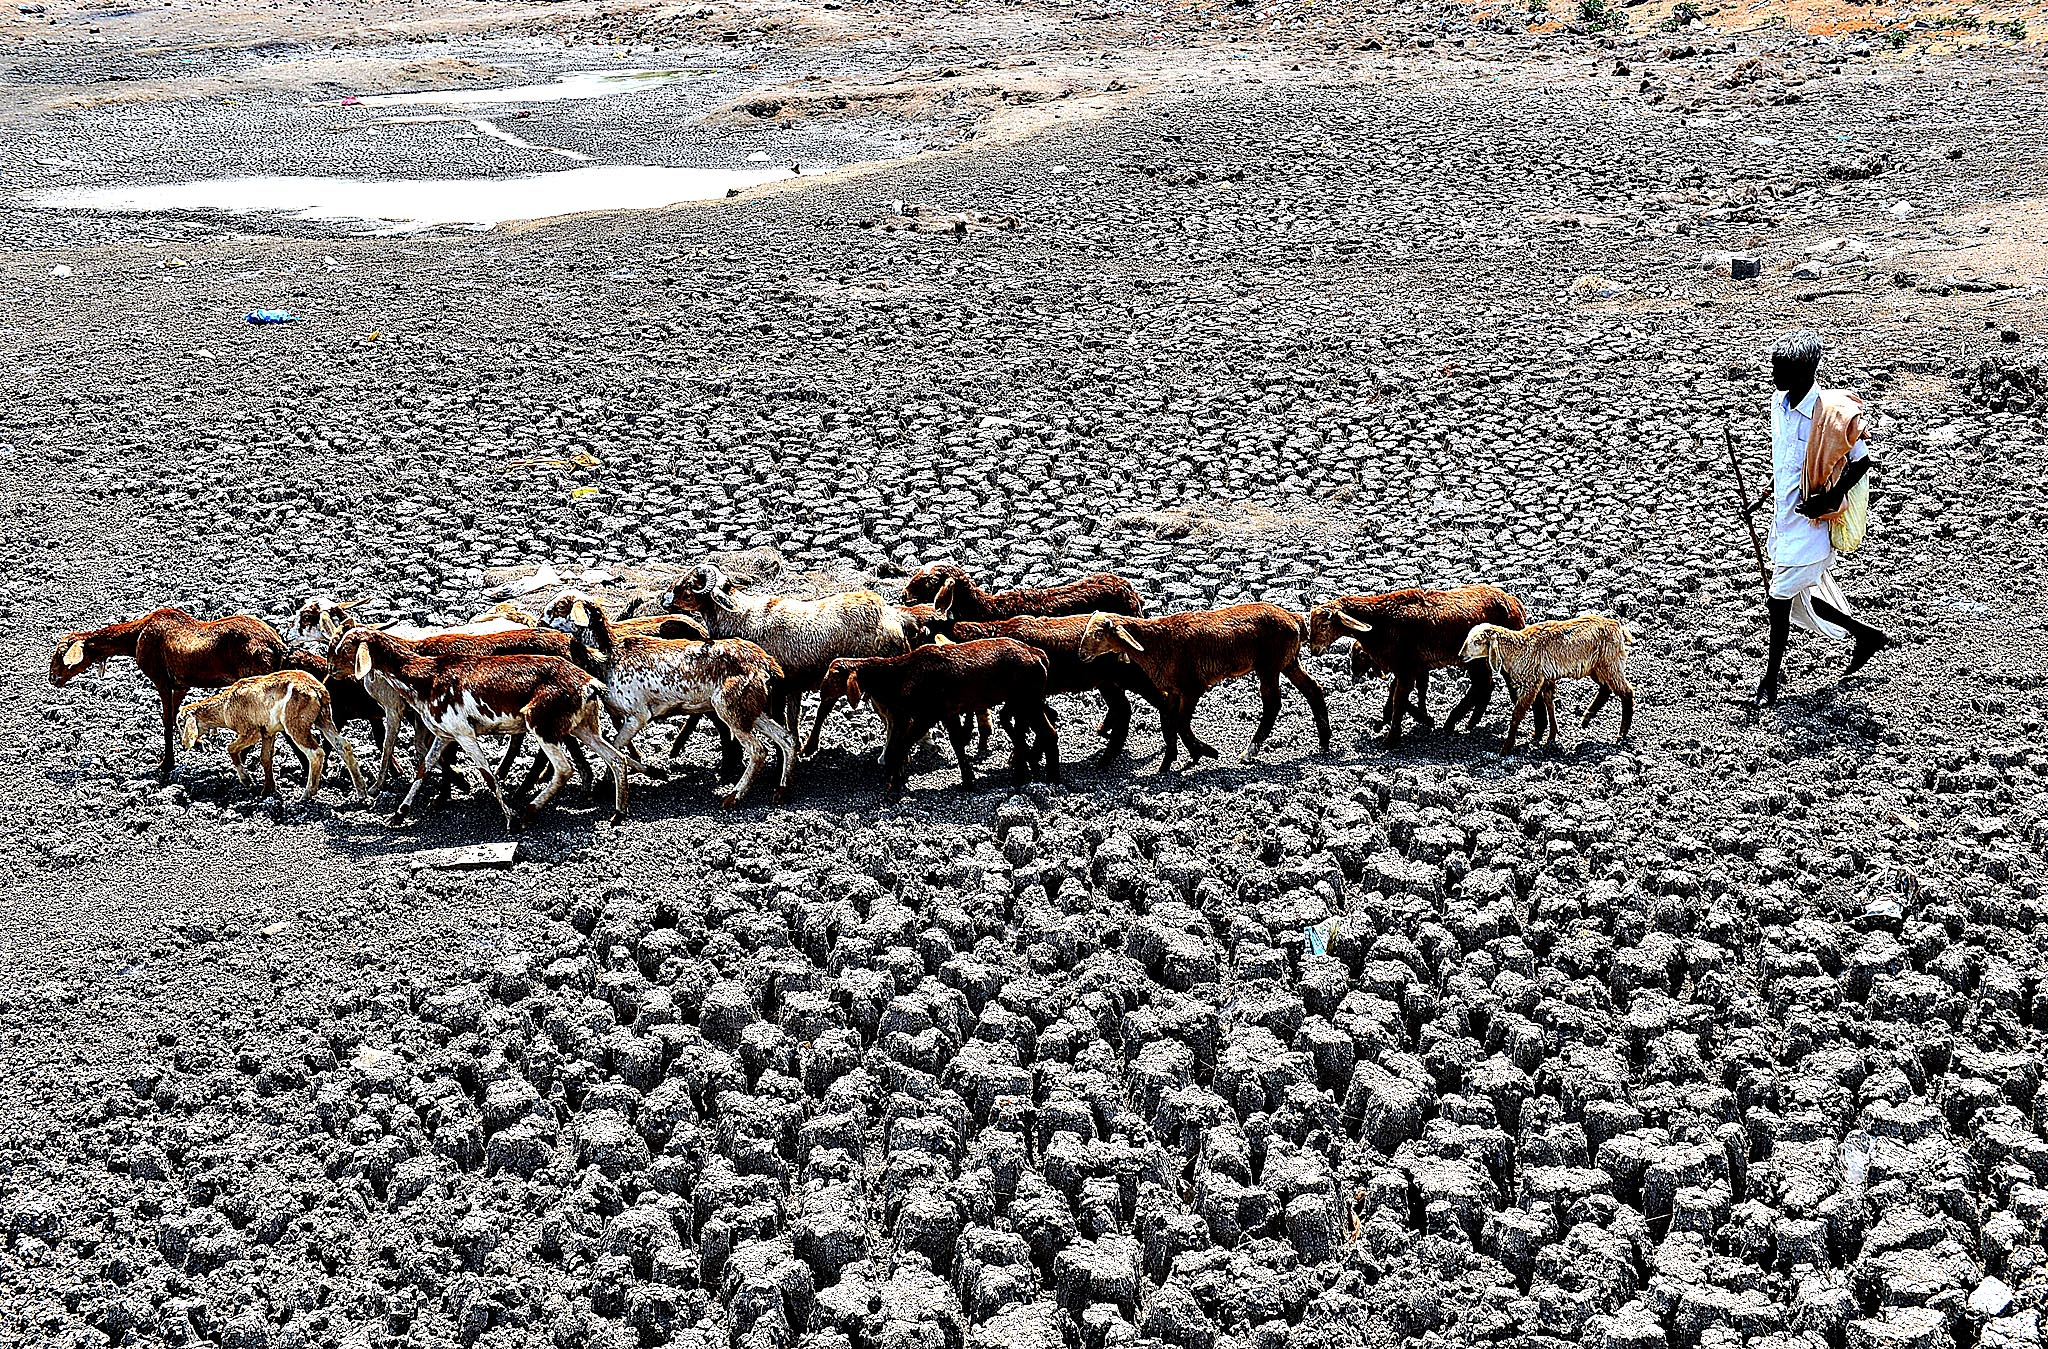 An Indian farmer herds his sheep on the dry bed of a river at Bibi Nagar in Nalgonda District, some 40 kilometers from Hyderabad on March 23, 2015.